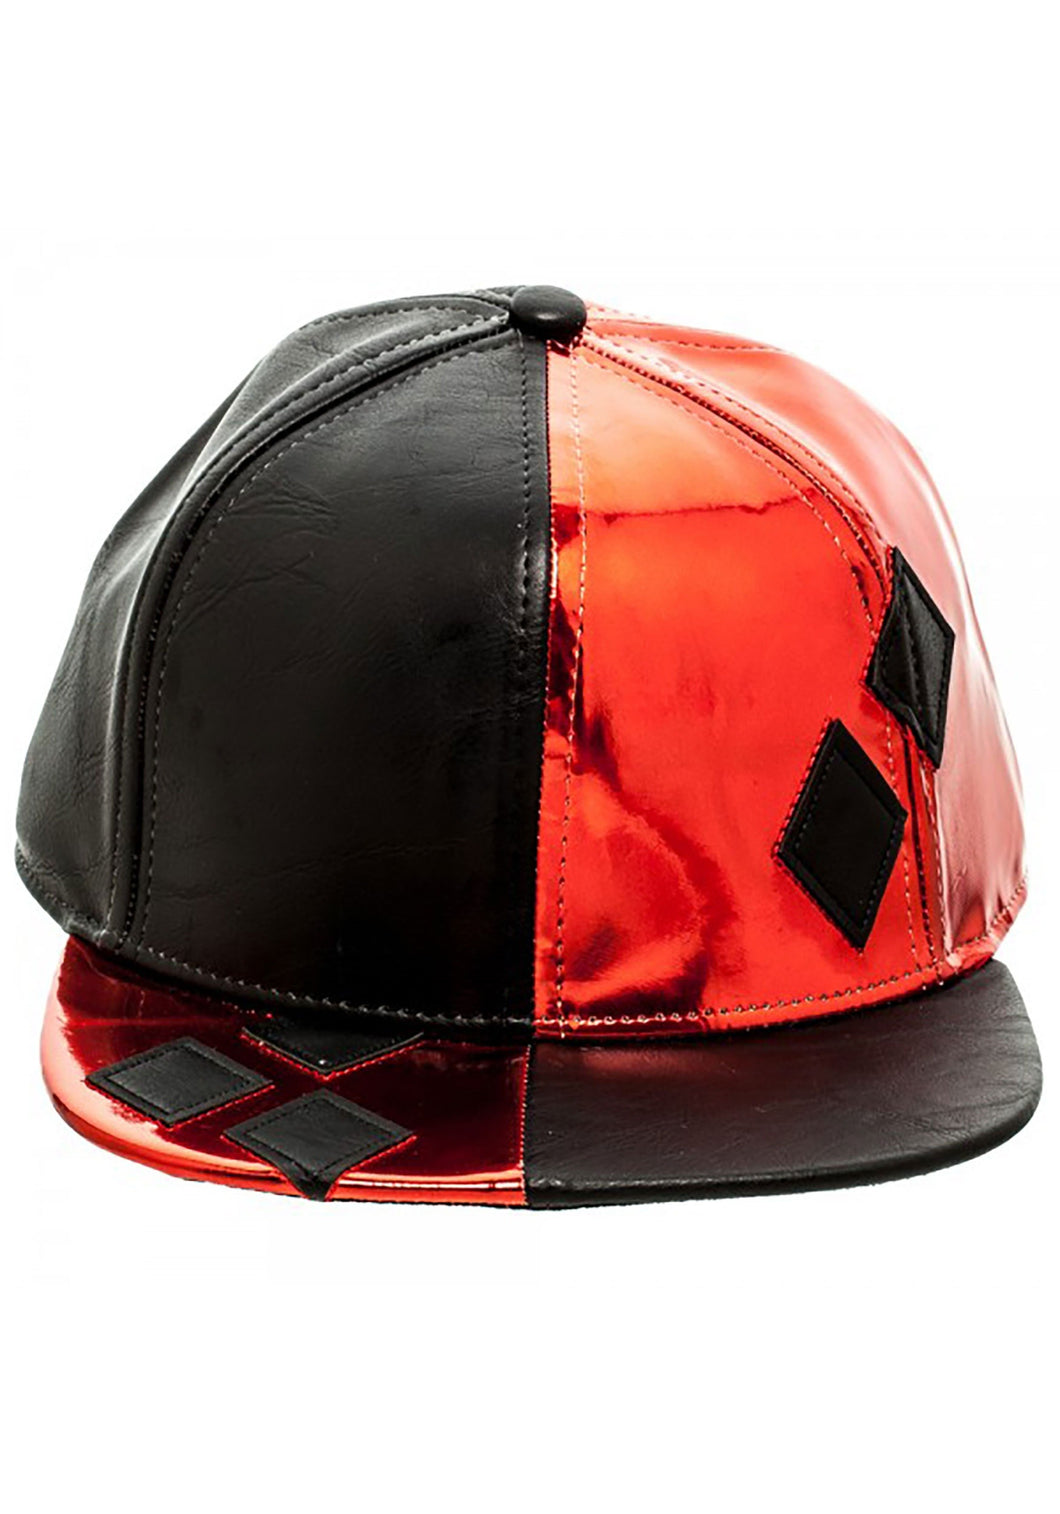 Harley Quinn Suit Up Snapback Hat - Mean-Tees.com